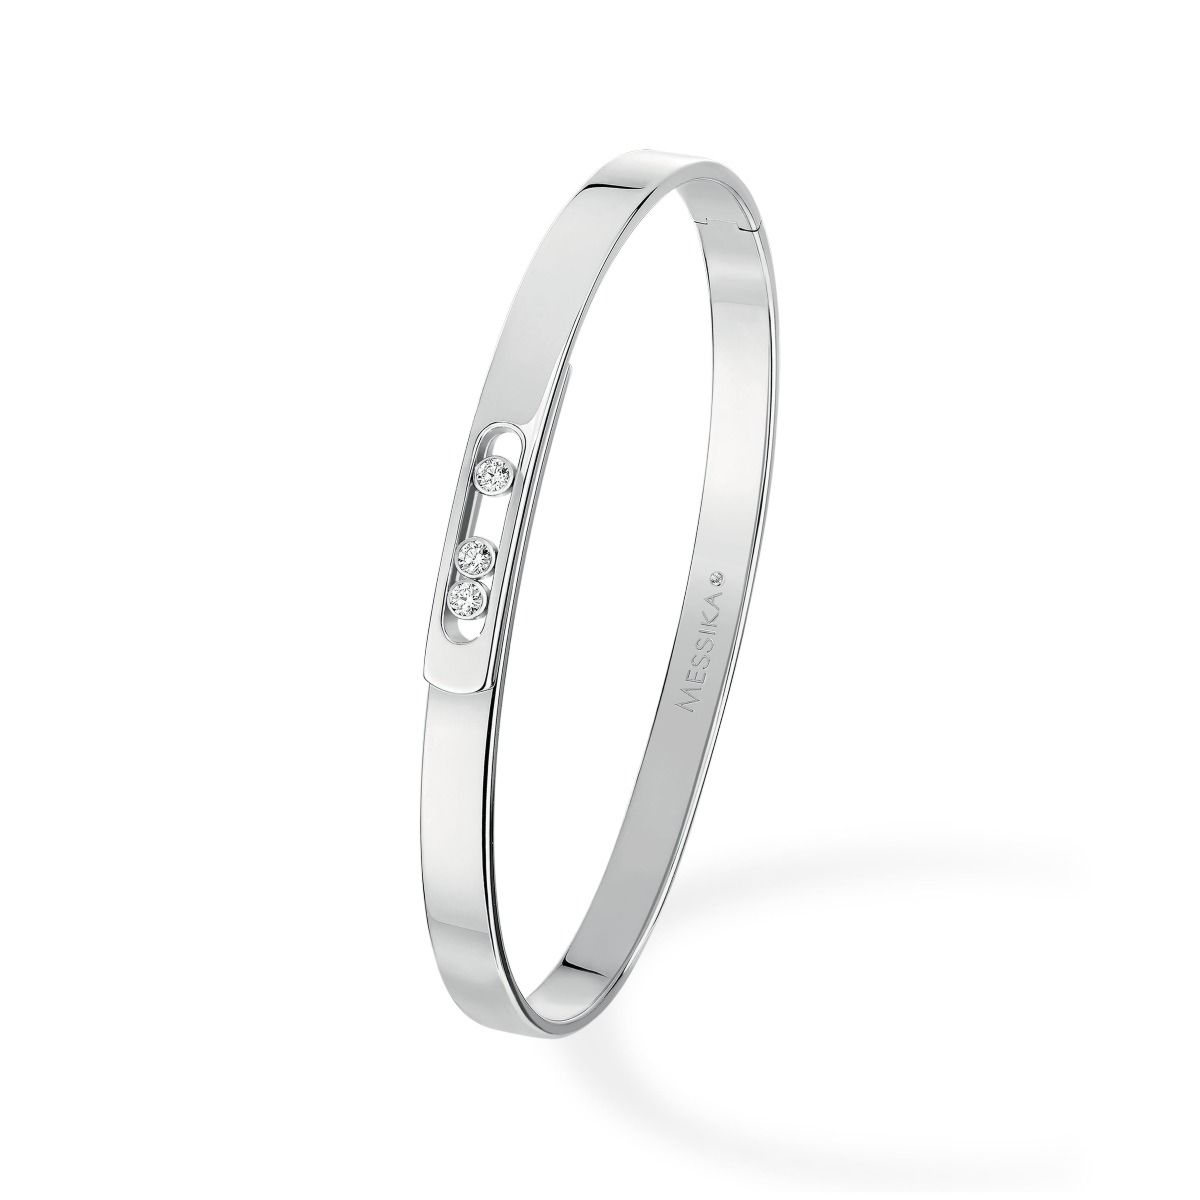 Move Noa Bangle PM BRACELET - WHITE GOLD